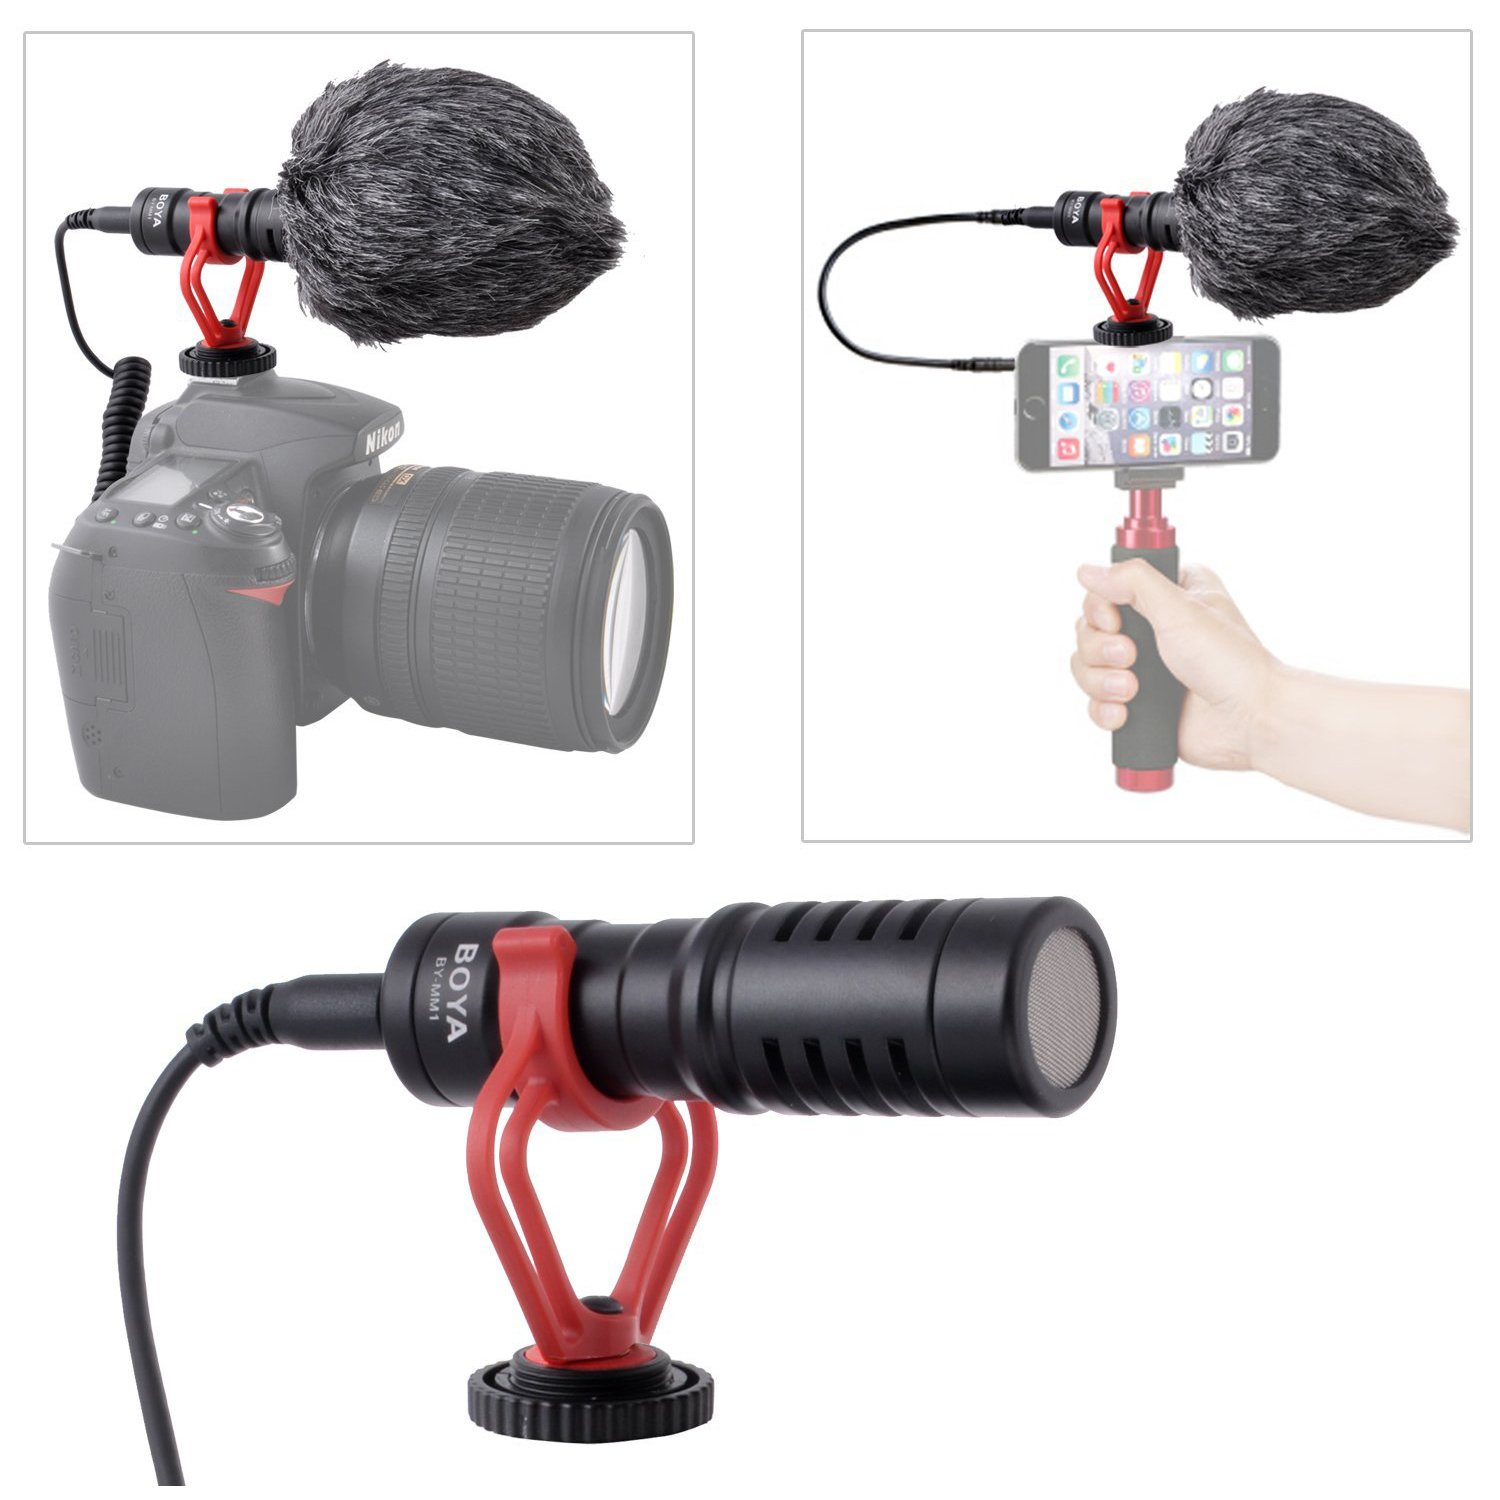 Crazefoto by-MM1 Super Cardioid Shotgun Video Microphone Universal Compact On-Camera Mini Recording Mic Directional Condenser Compatible with DSLR Camera Camcorder iPhone Smartphones